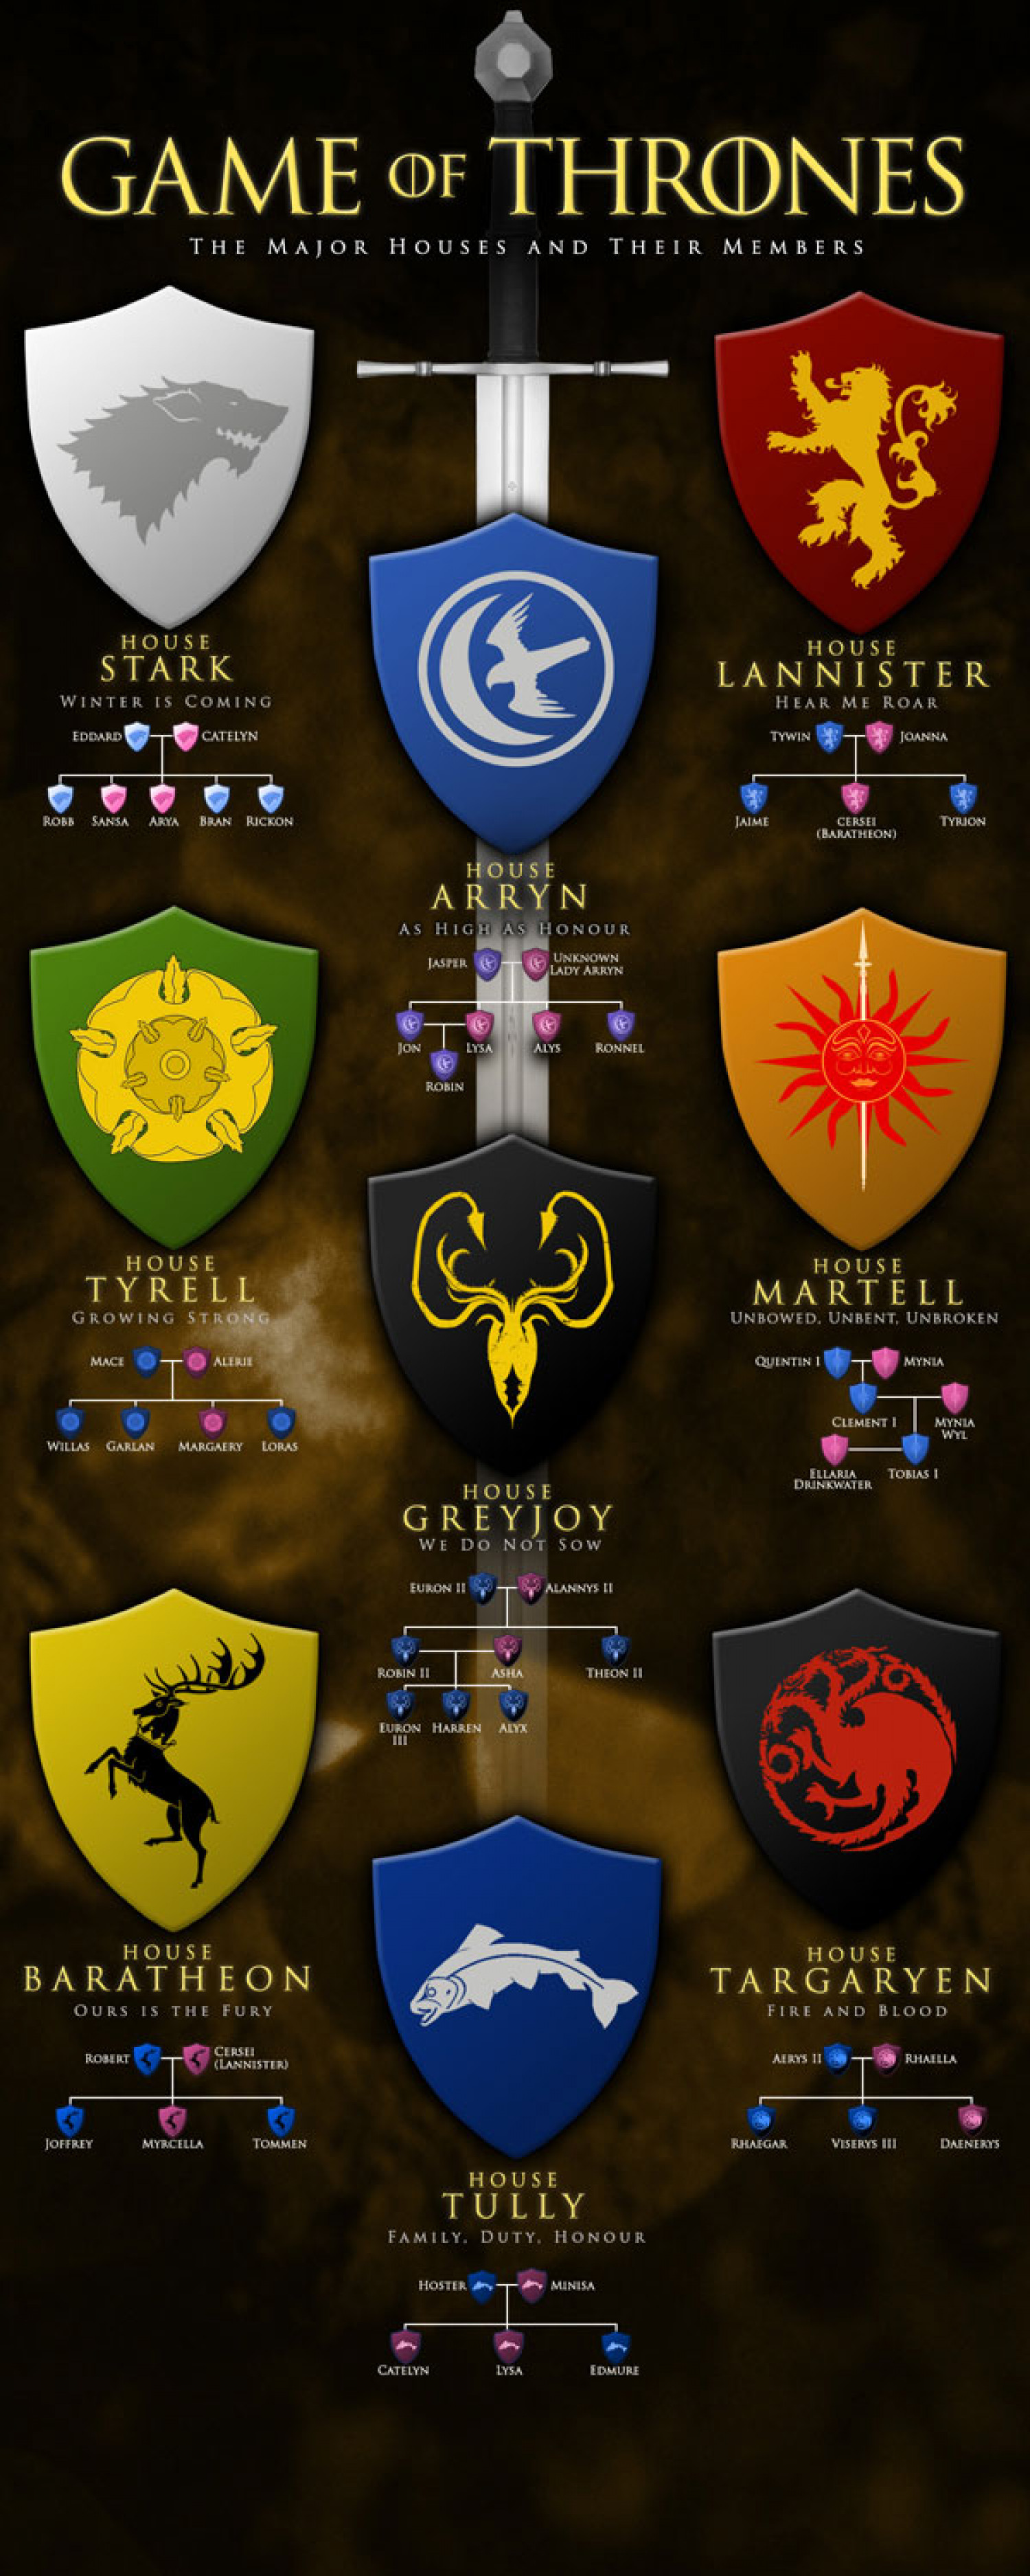 Game of Thrones Characters Infographic